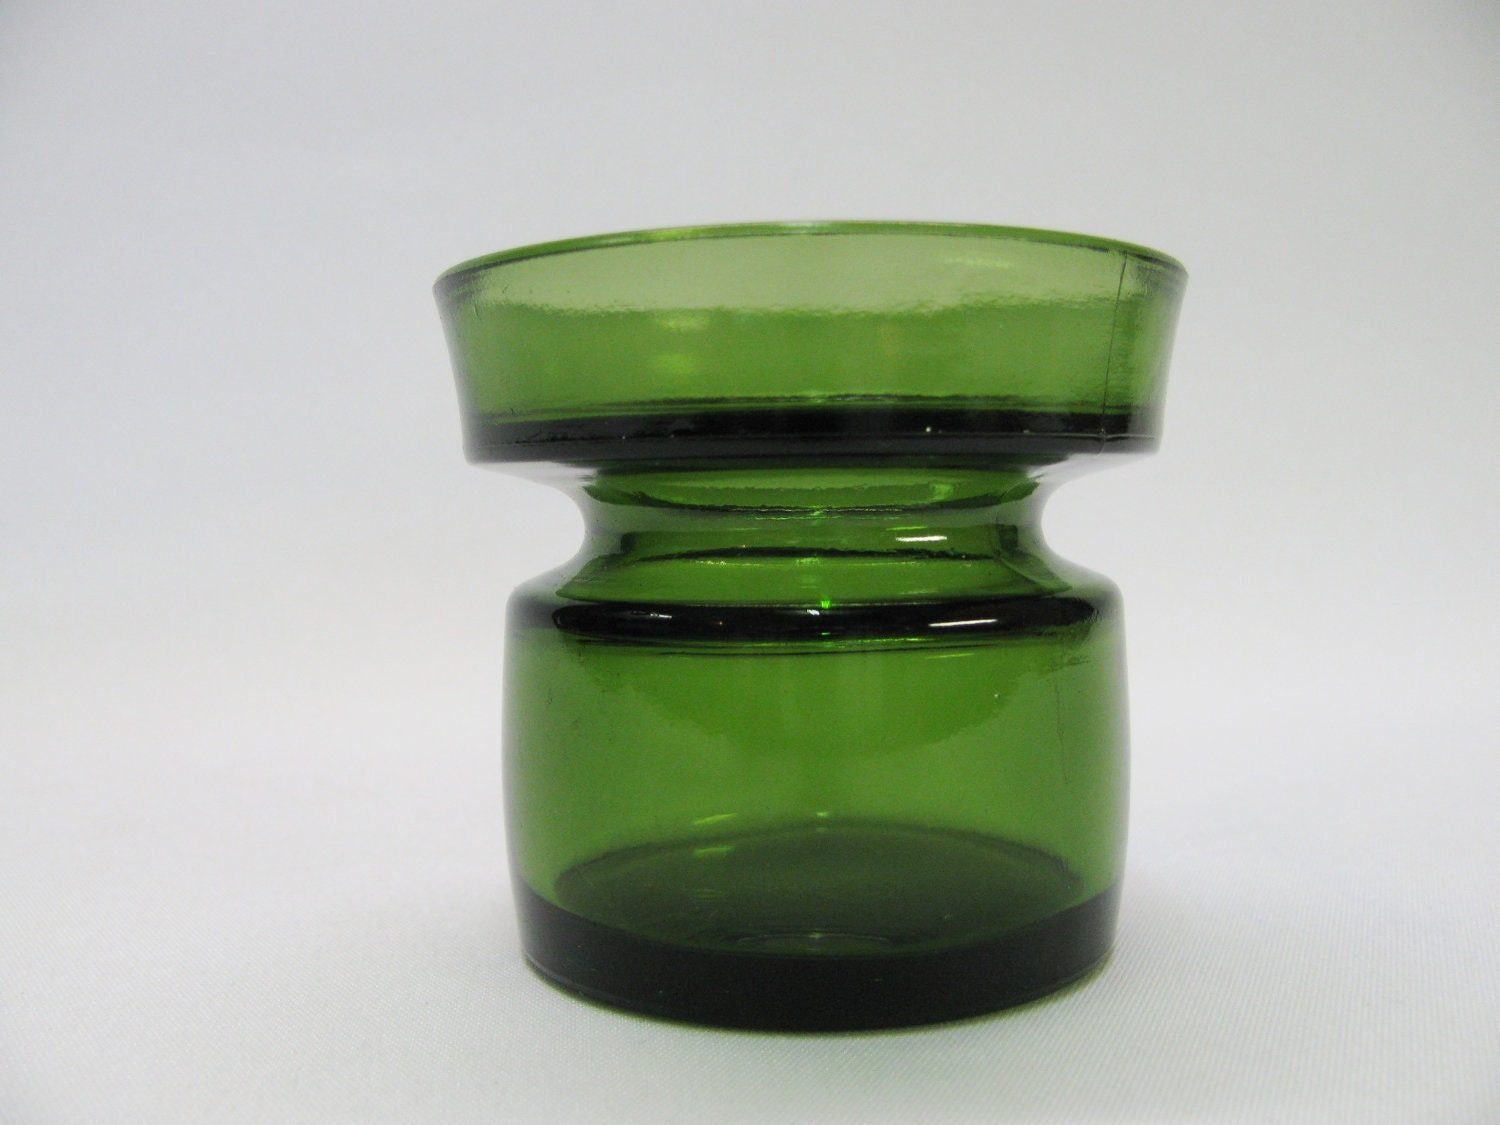 dansk designs ltd ihq green glass candleholder. Black Bedroom Furniture Sets. Home Design Ideas